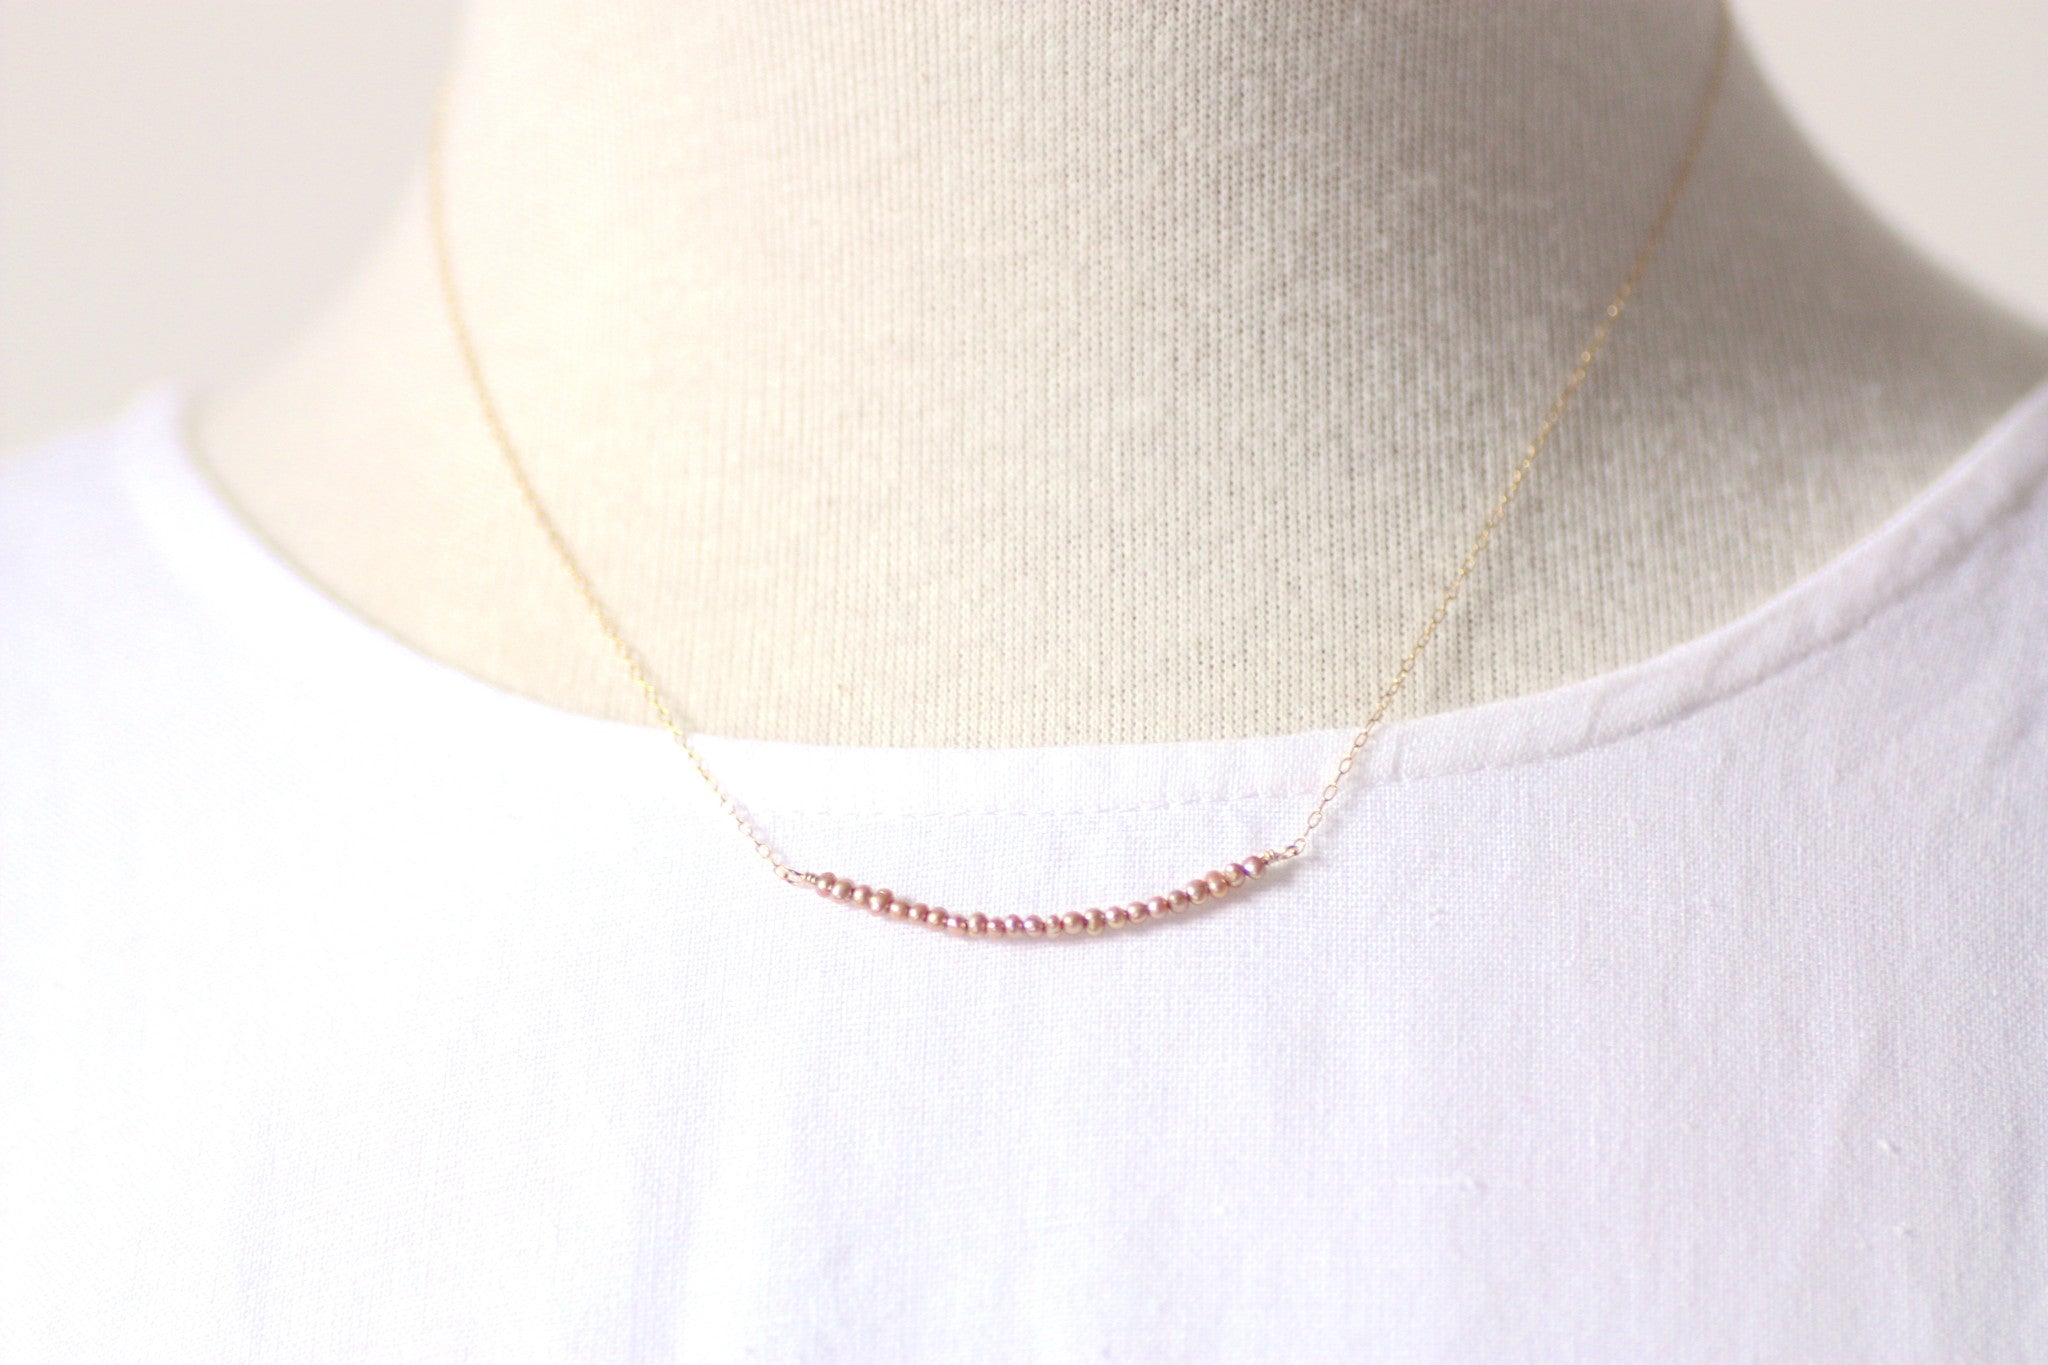 P'tite Jolie Gemstone Bar Necklaces in Gold Filled